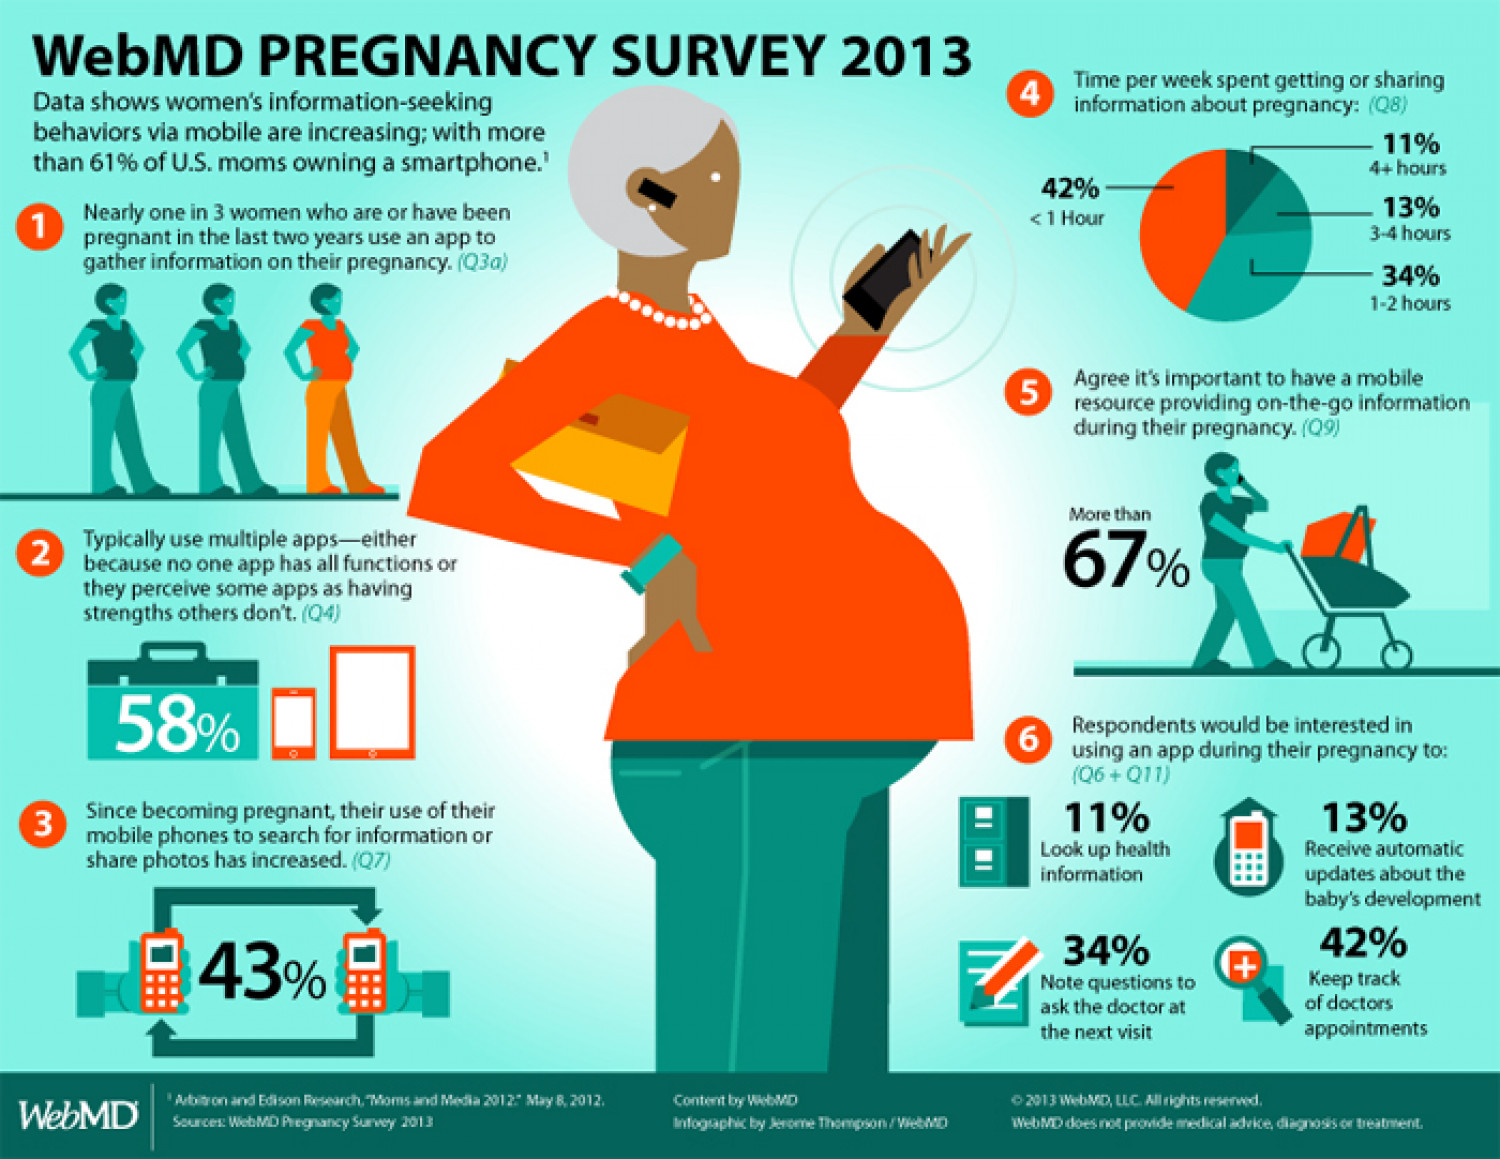 WebMD Pregnancy Survey 2013 Infographic